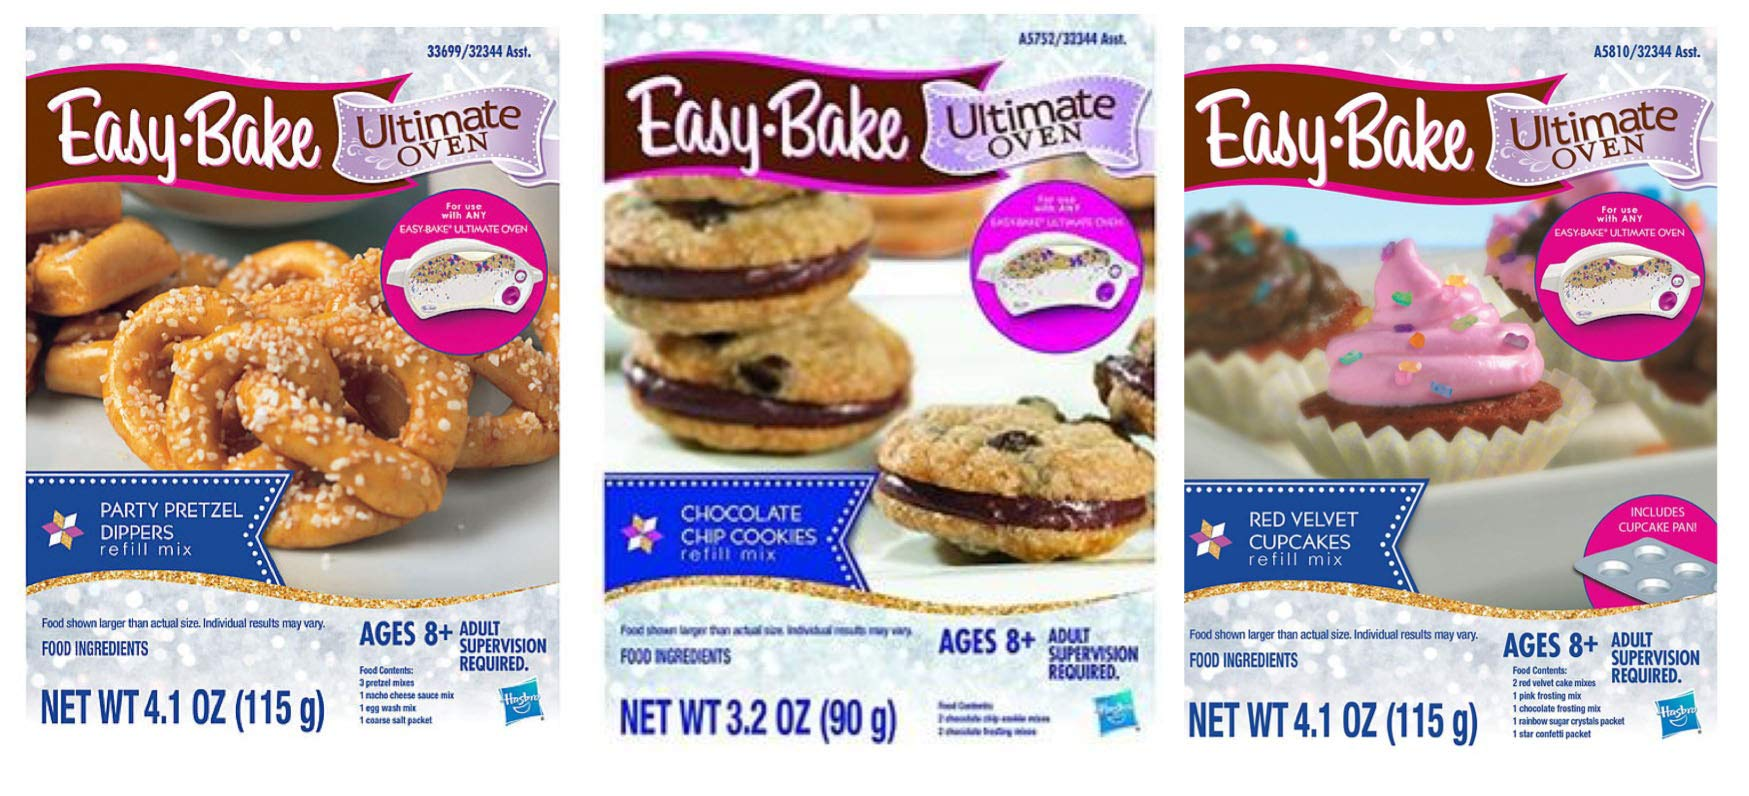 InterC Set of 3 Easy Bake Oven Mixes Refills one Each: Party Pretzel Dippers, Chocolate Chip Cookies, Red Velvet Cupcakes by InterC